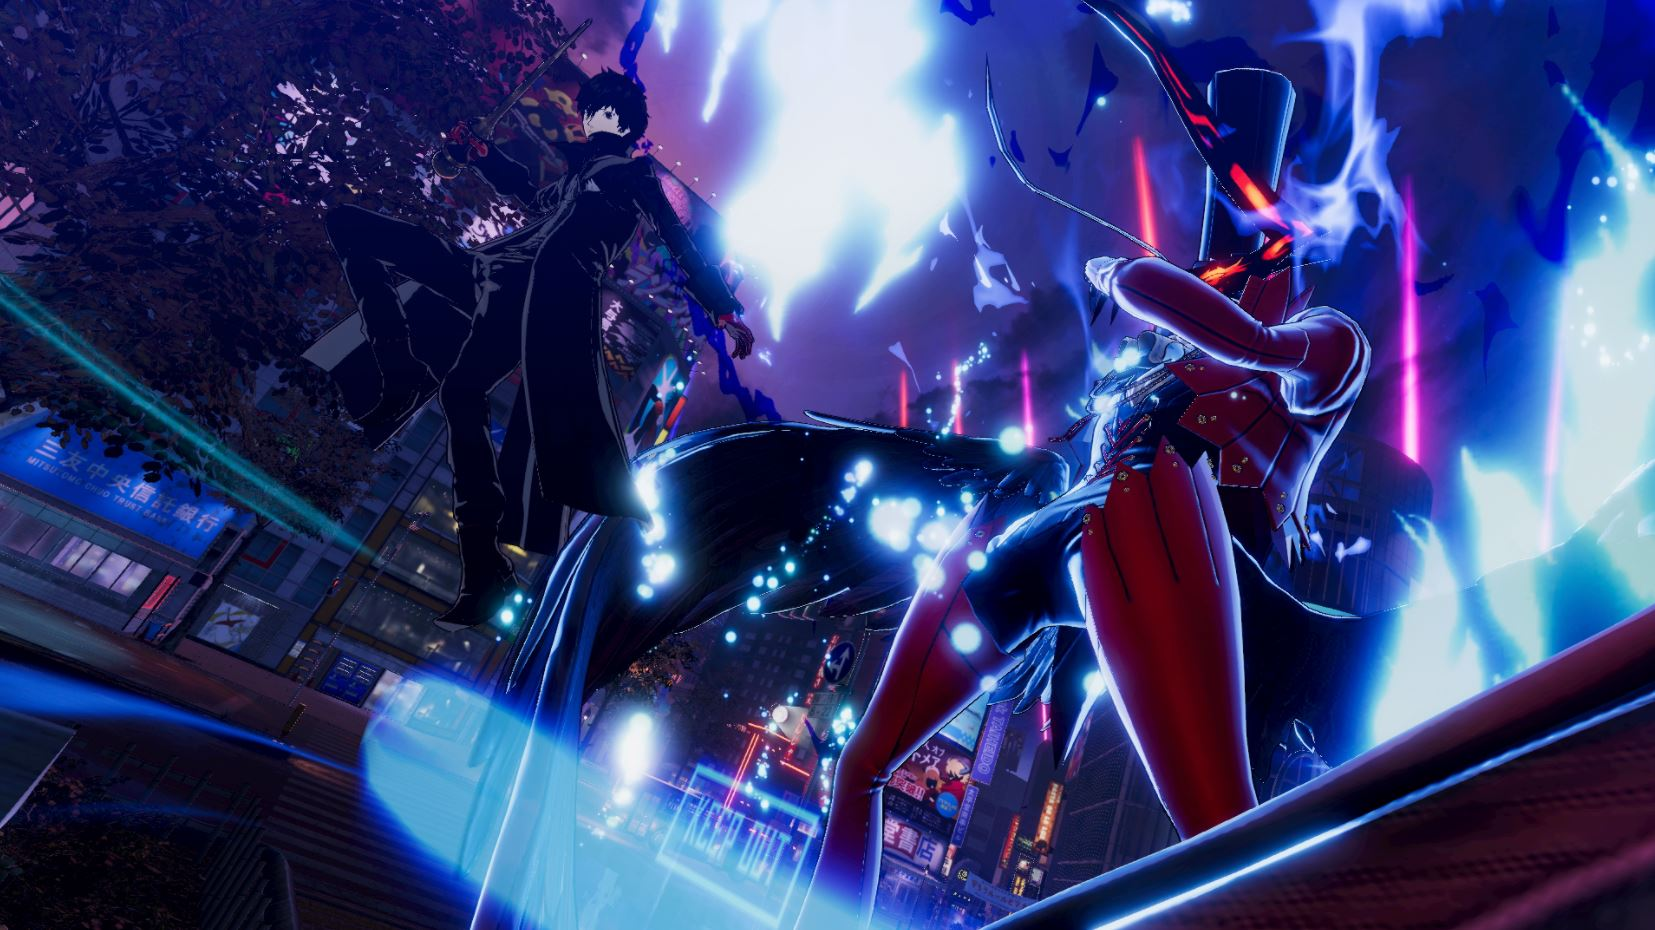 persona-5-strikers-review-ps4-fun-high-flying-action-for-everyone-with-the-signature-persona-style-2